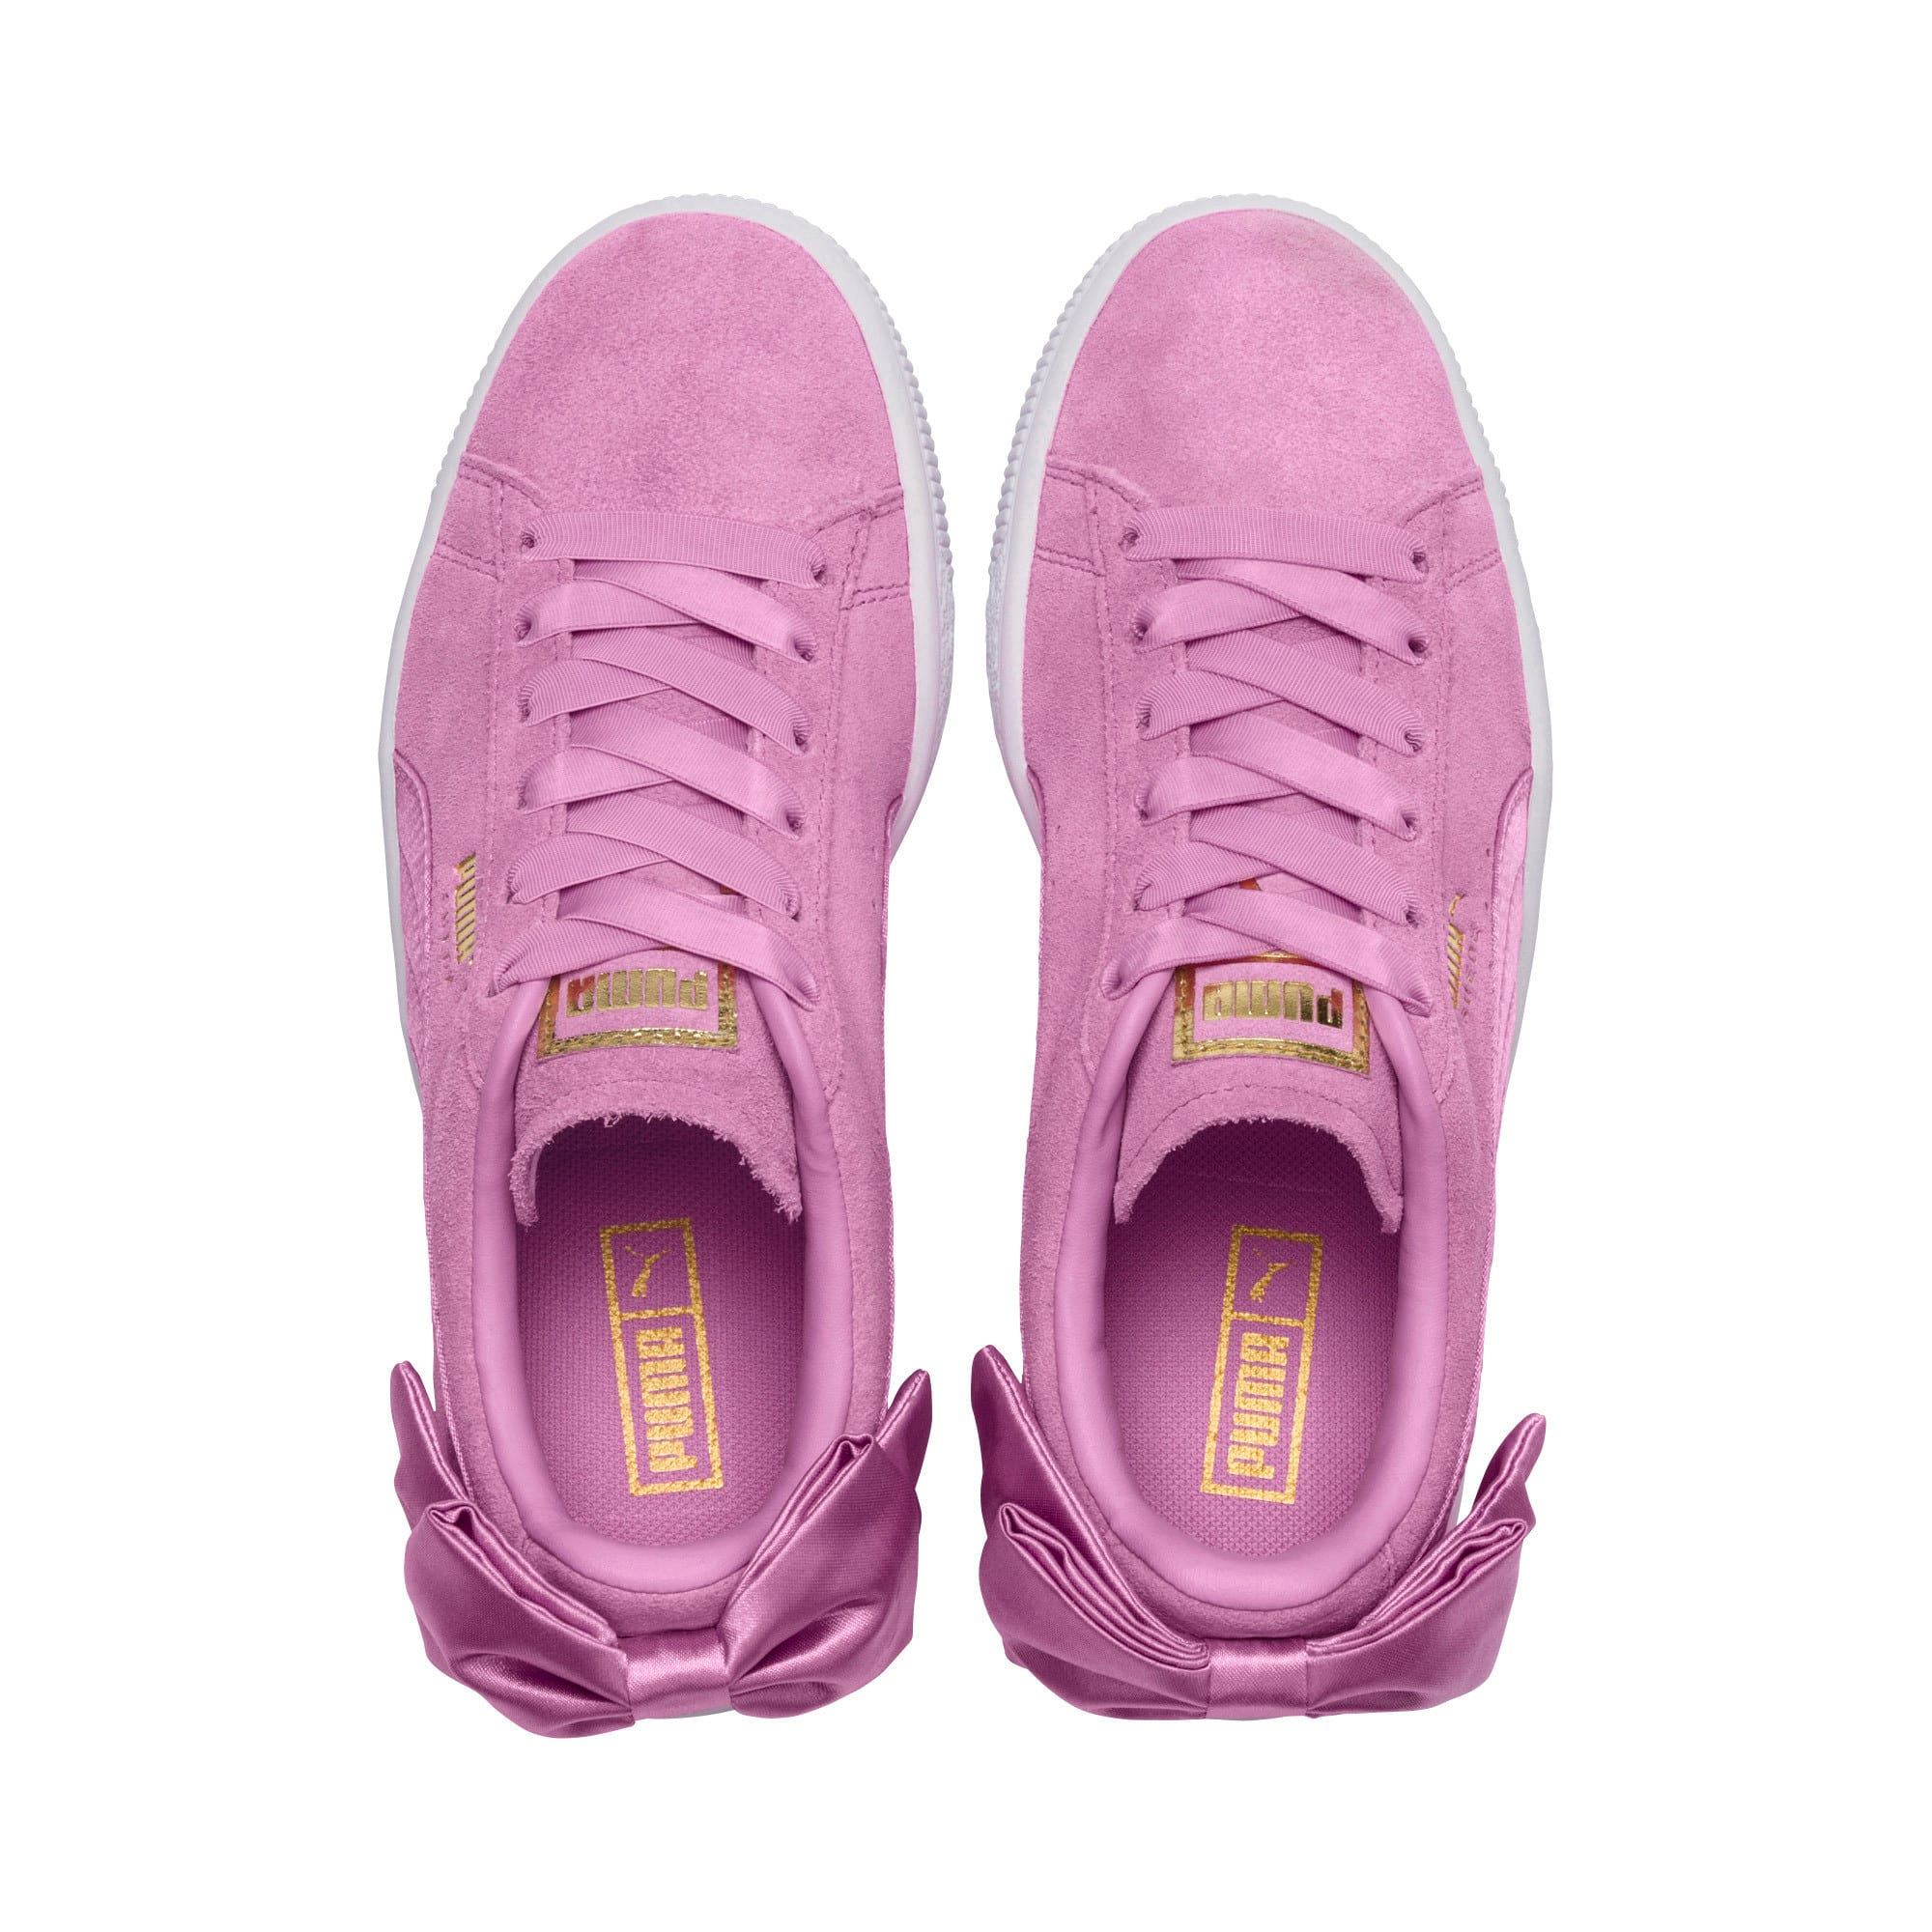 Thumbnail 6 of Suede Bow Girls' Trainers, Orchid-Orchid, medium-IND